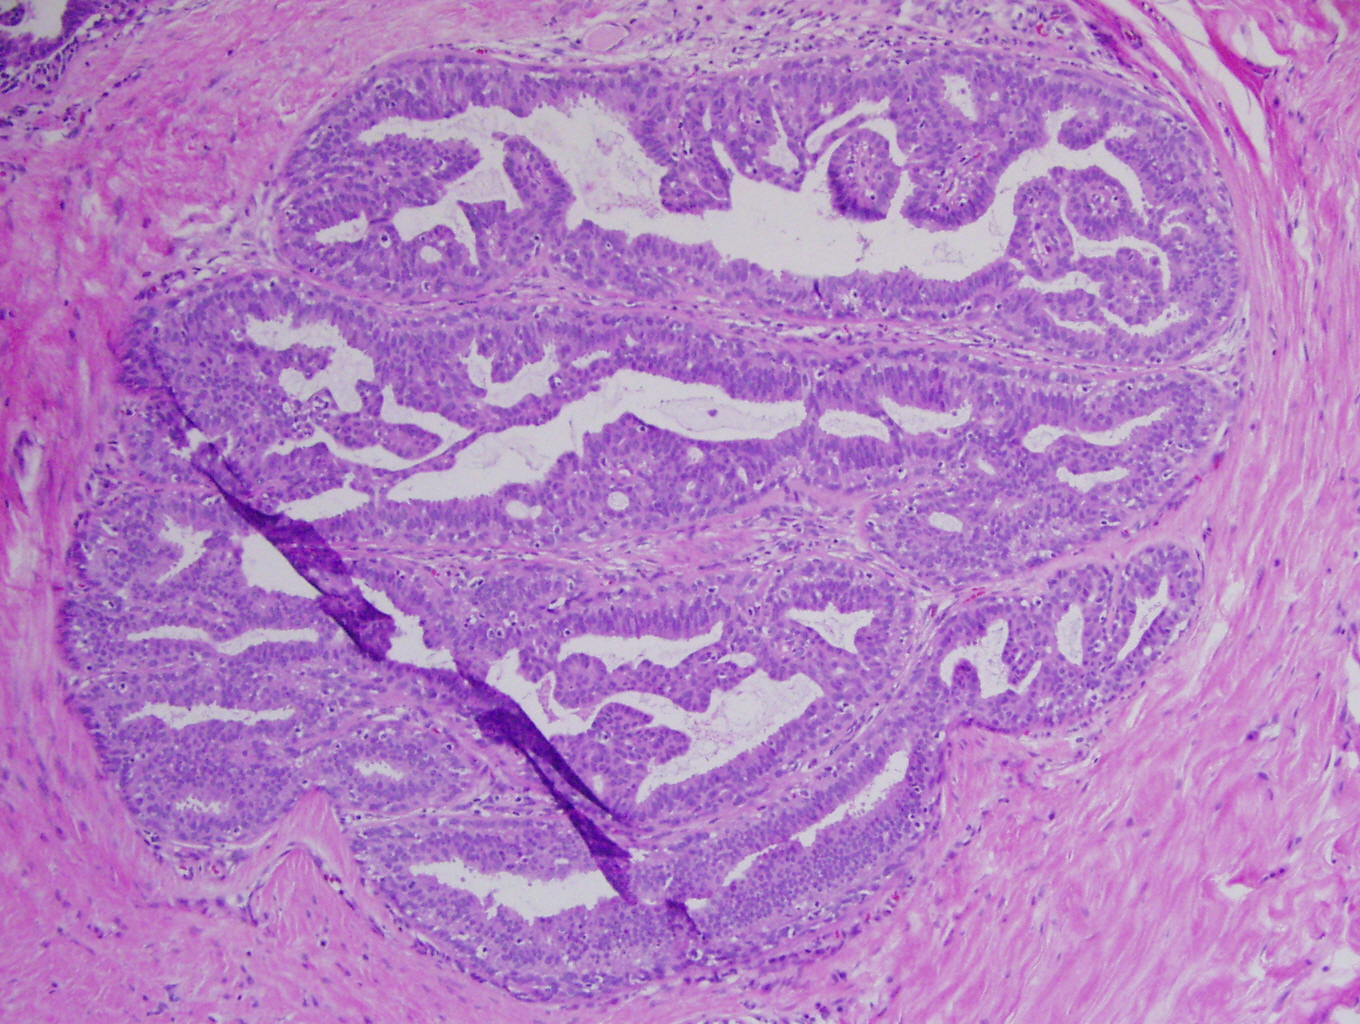 intraductal papilloma of pancreas